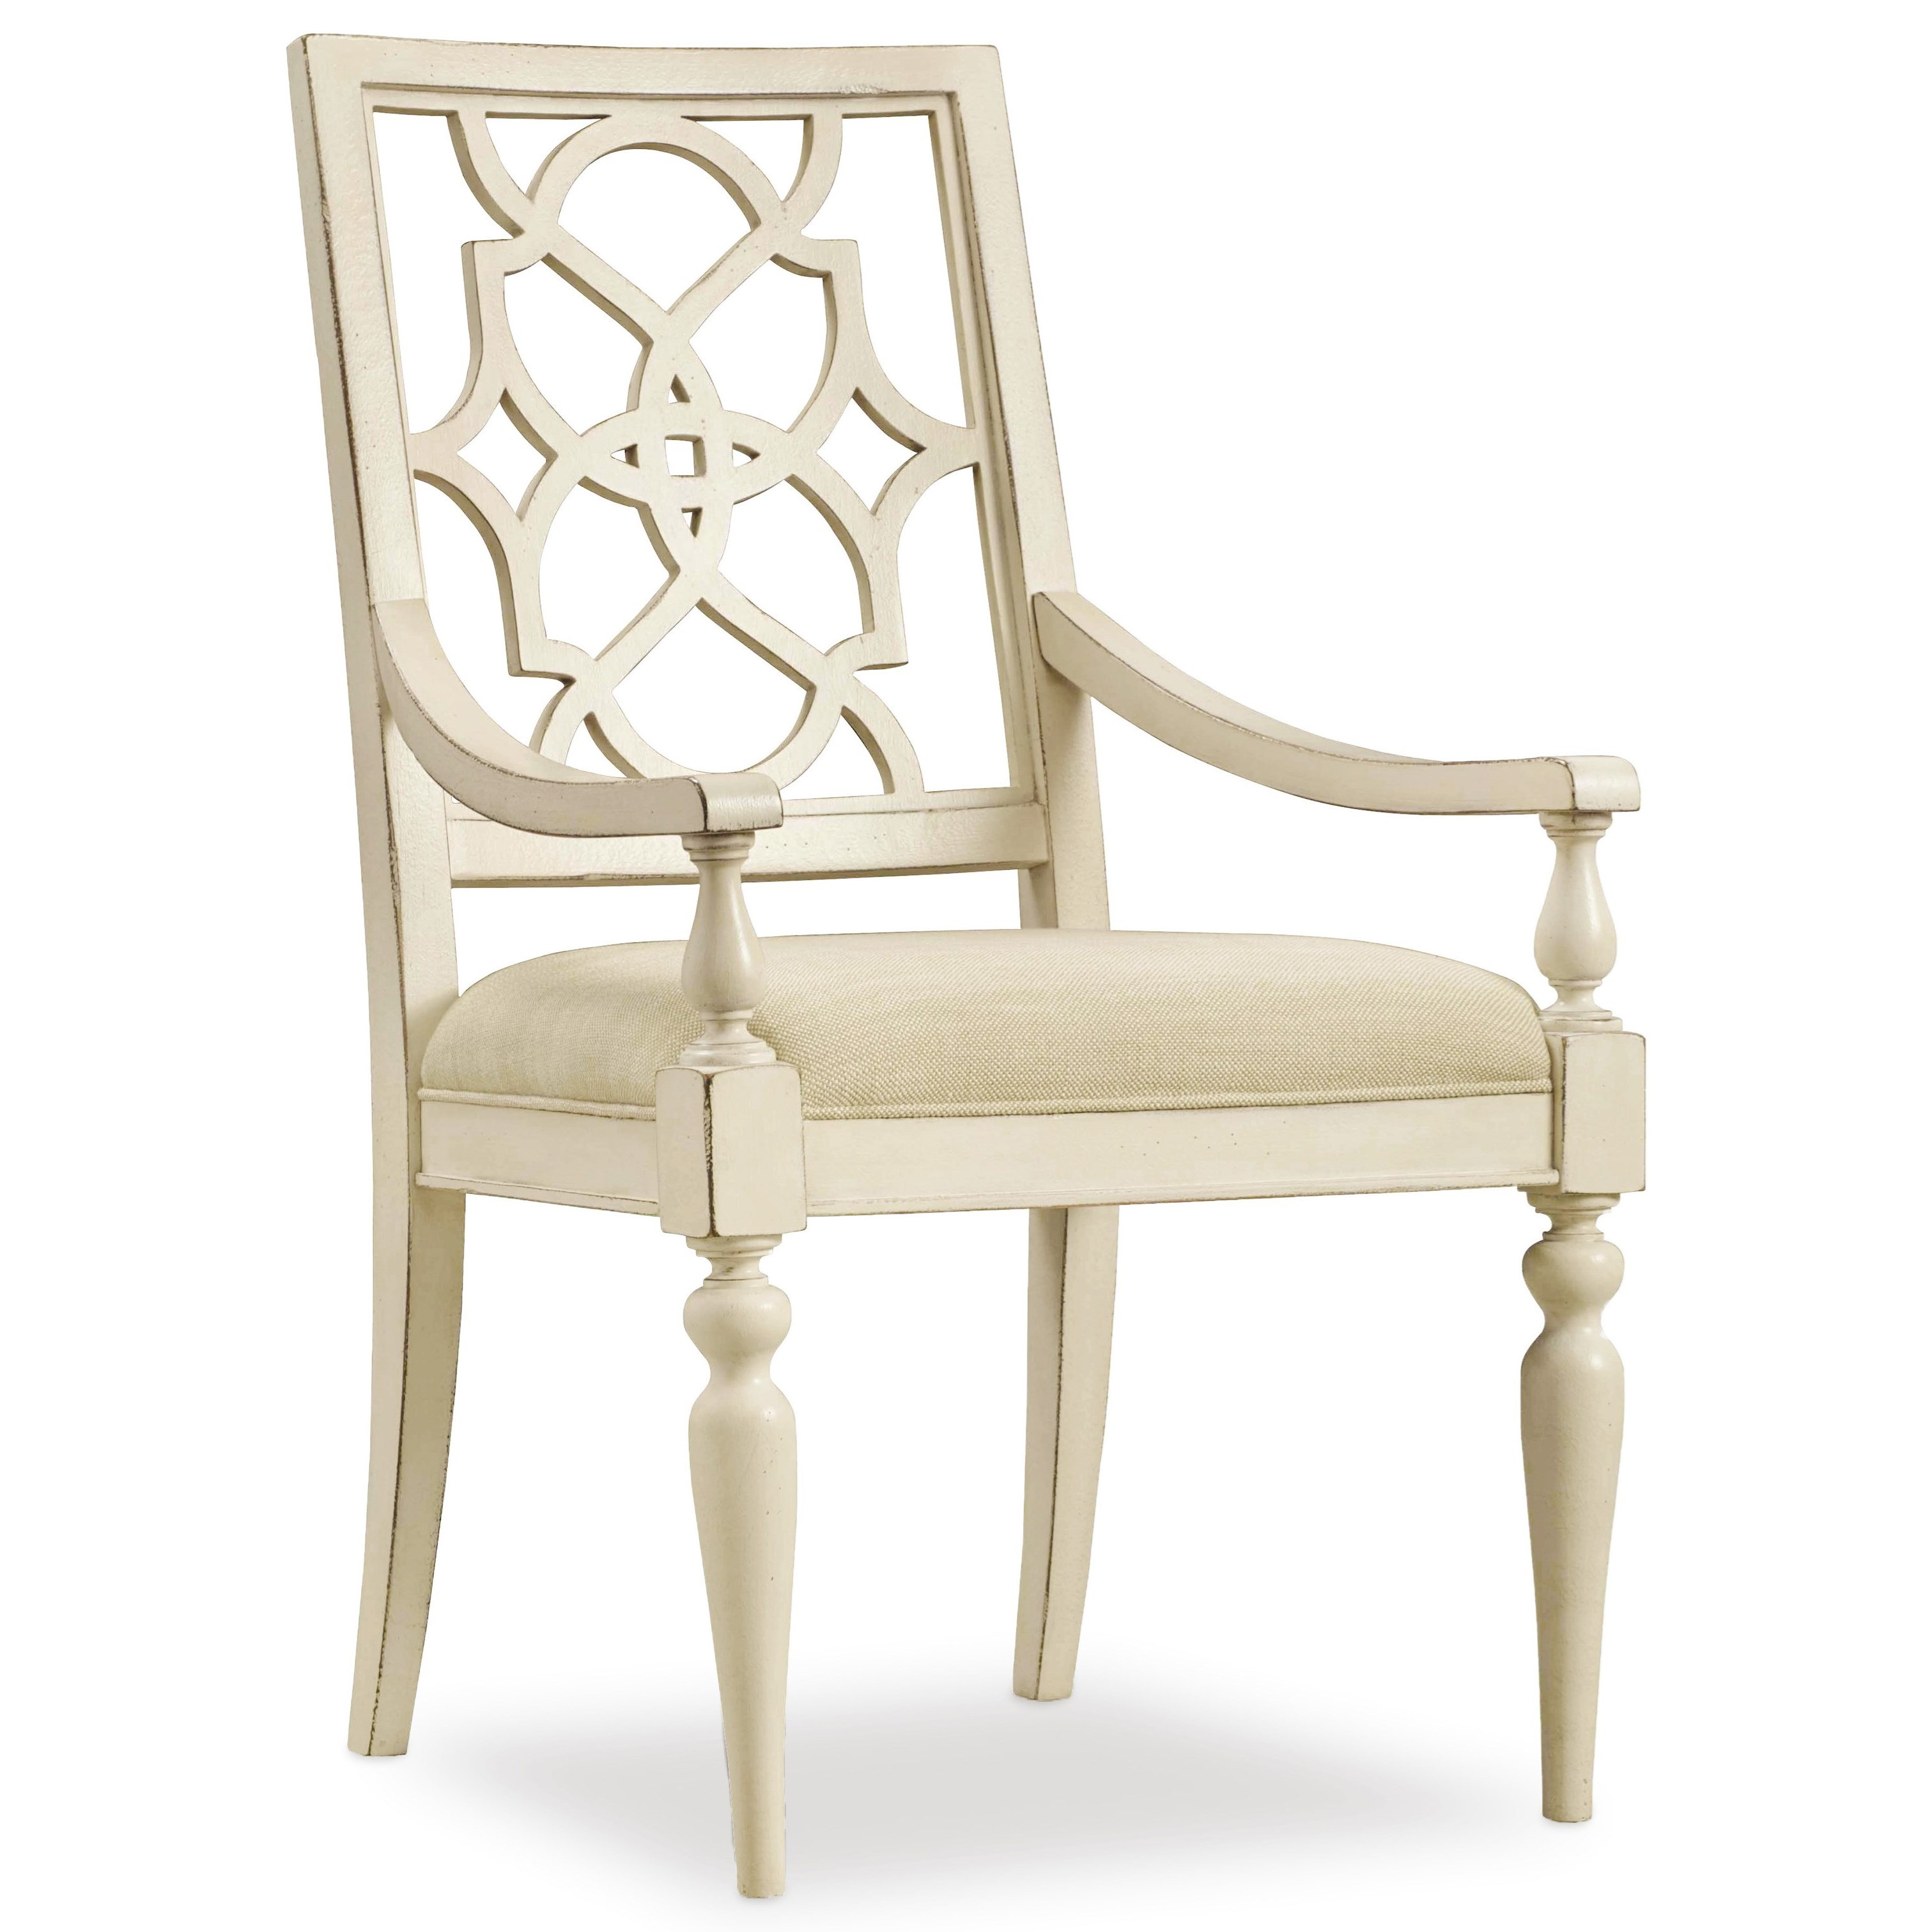 Dining Room Arm Chairs Upholstered: Hamilton Home Gweneth Fretback Arm Chair